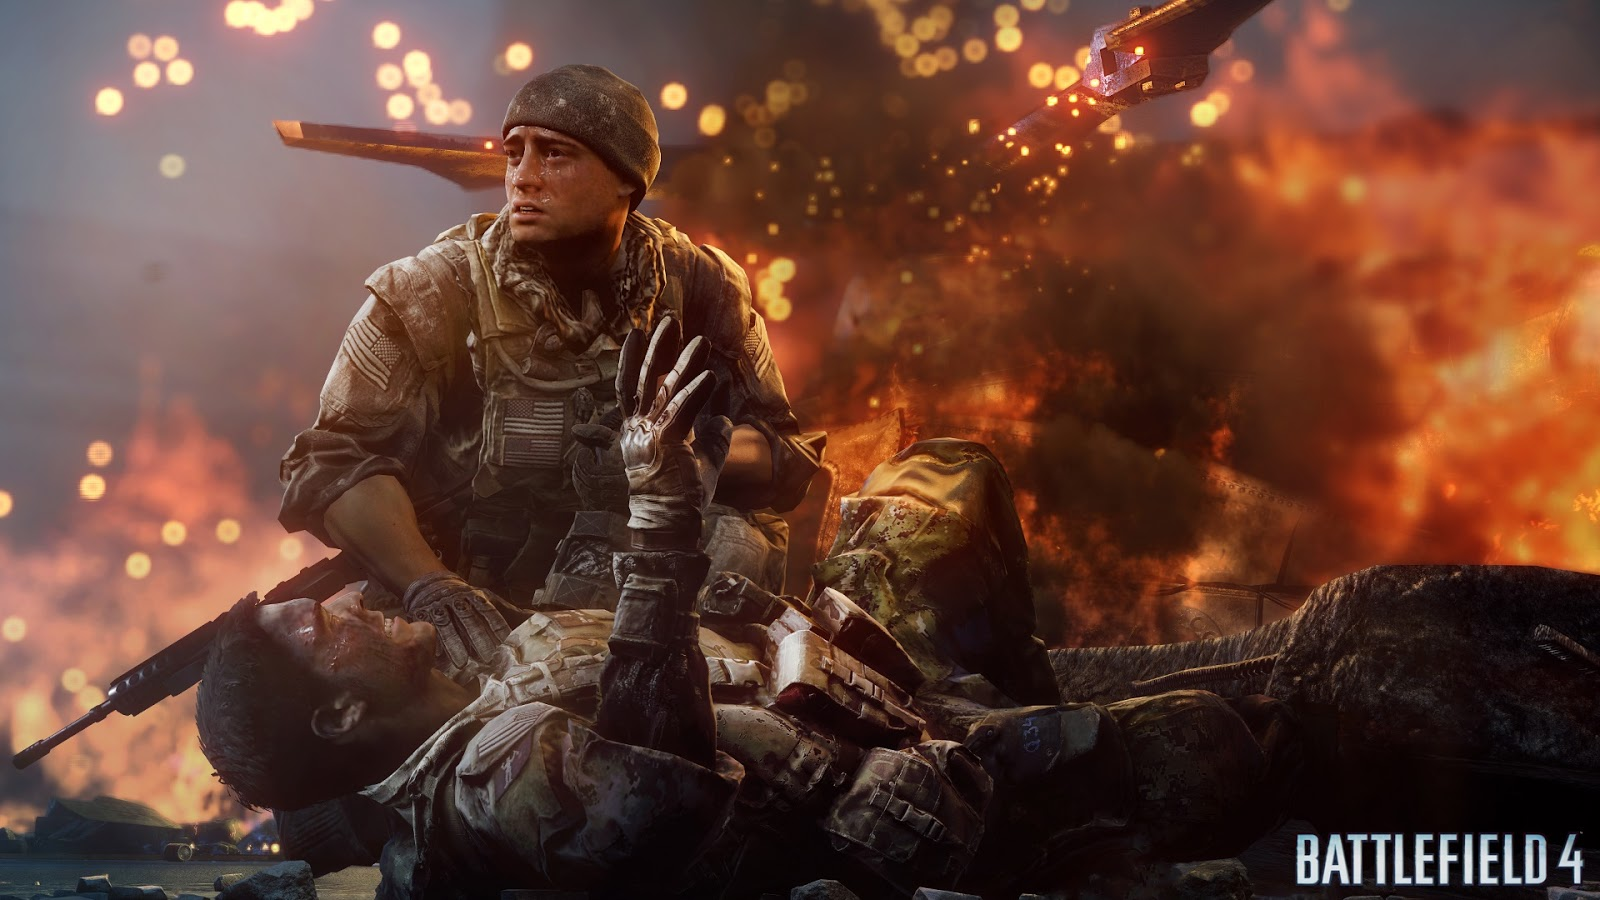 http://4.bp.blogspot.com/-9D63GKL6i4s/UVPs-ezcvzI/AAAAAAAADzY/KM-v-JhbK6A/s1600/battlefield+4+wallpaper+hd+gameplay+screenshot+2.jpg